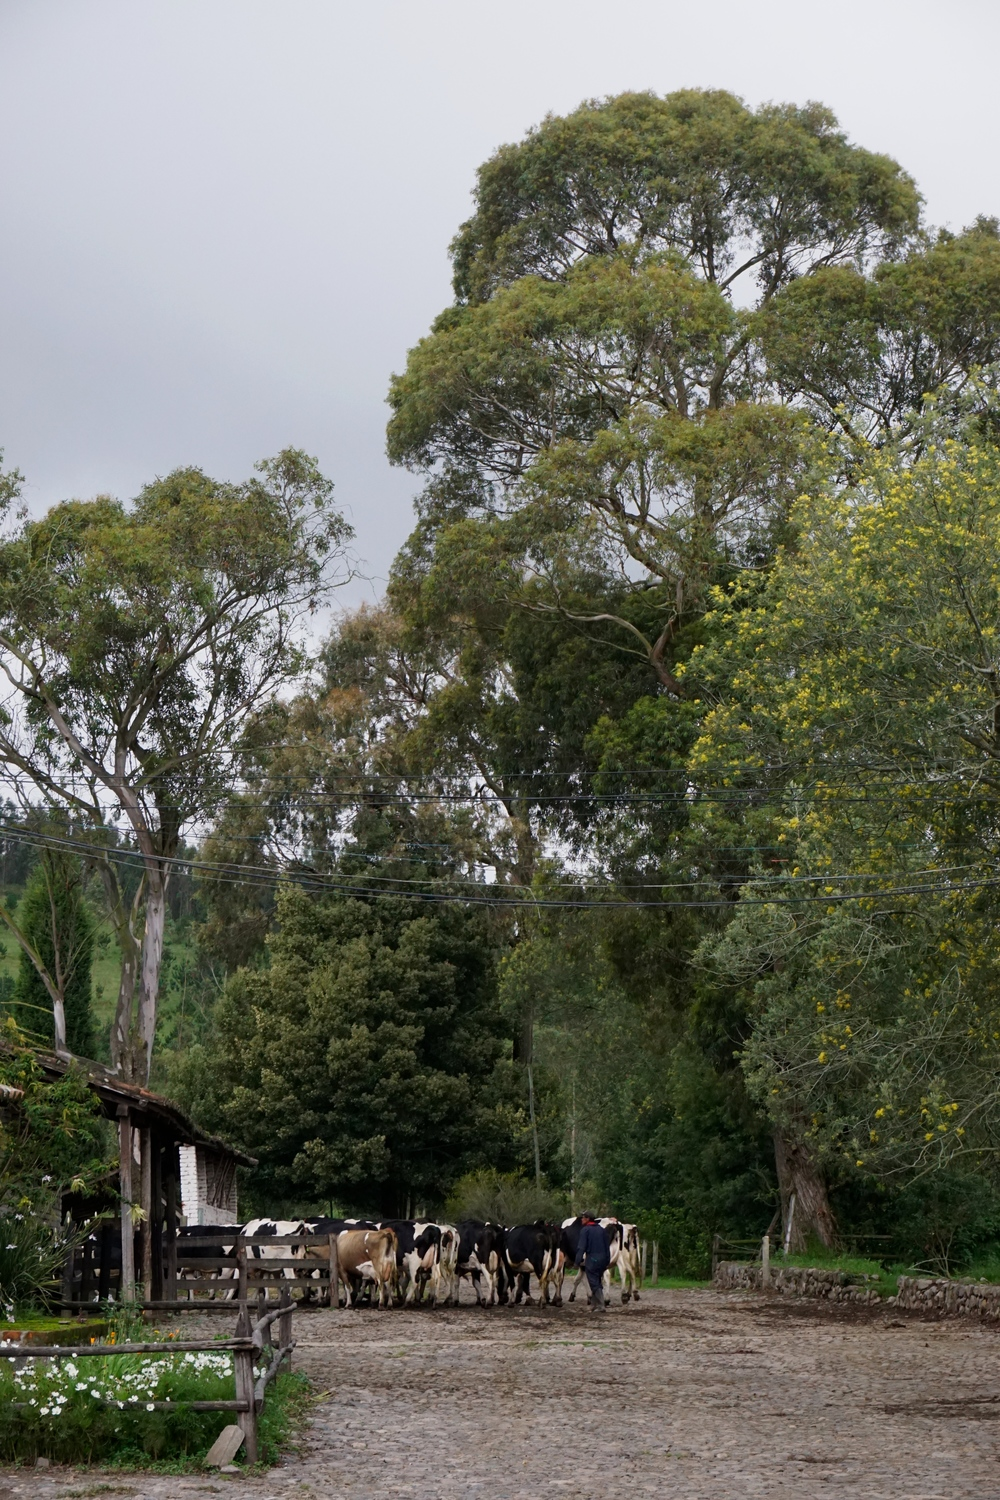 The cows heading to their afternoon milking